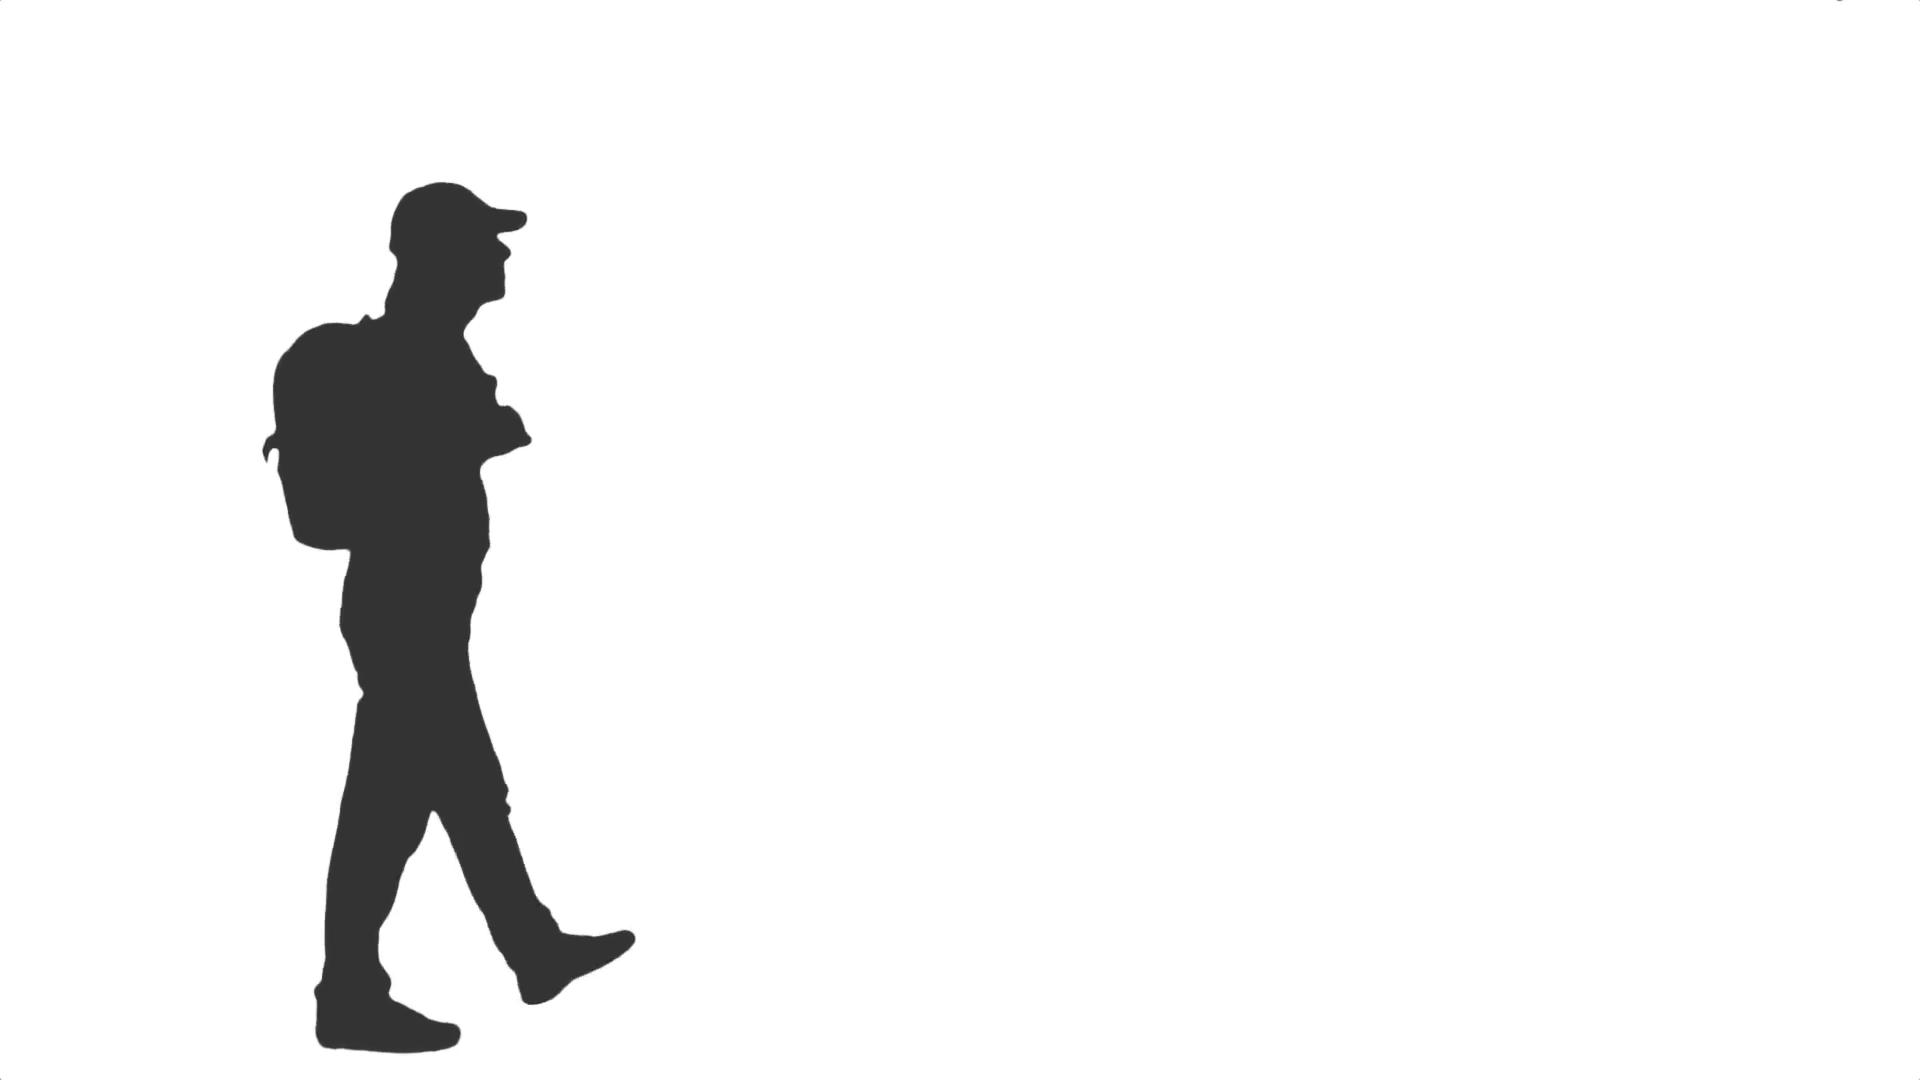 1920x1080 Silhouette Of A Young Man Walking With A Backpack. Side View. Full